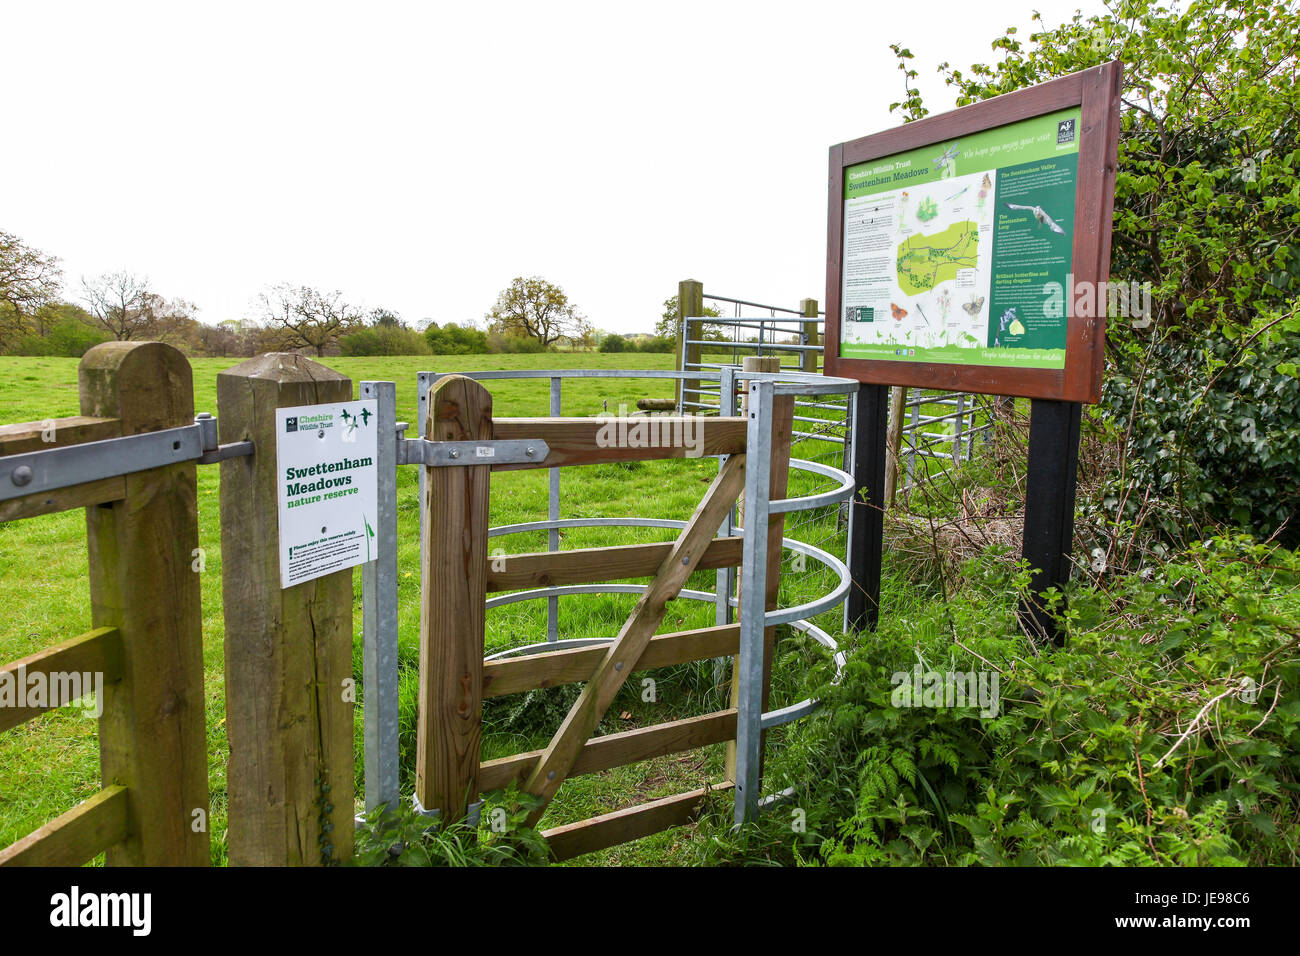 A sign or notice board at Swettenham Meadows nature reserve run by Cheshire Wildlife Trust, Swettenham Cheshire - Stock Image